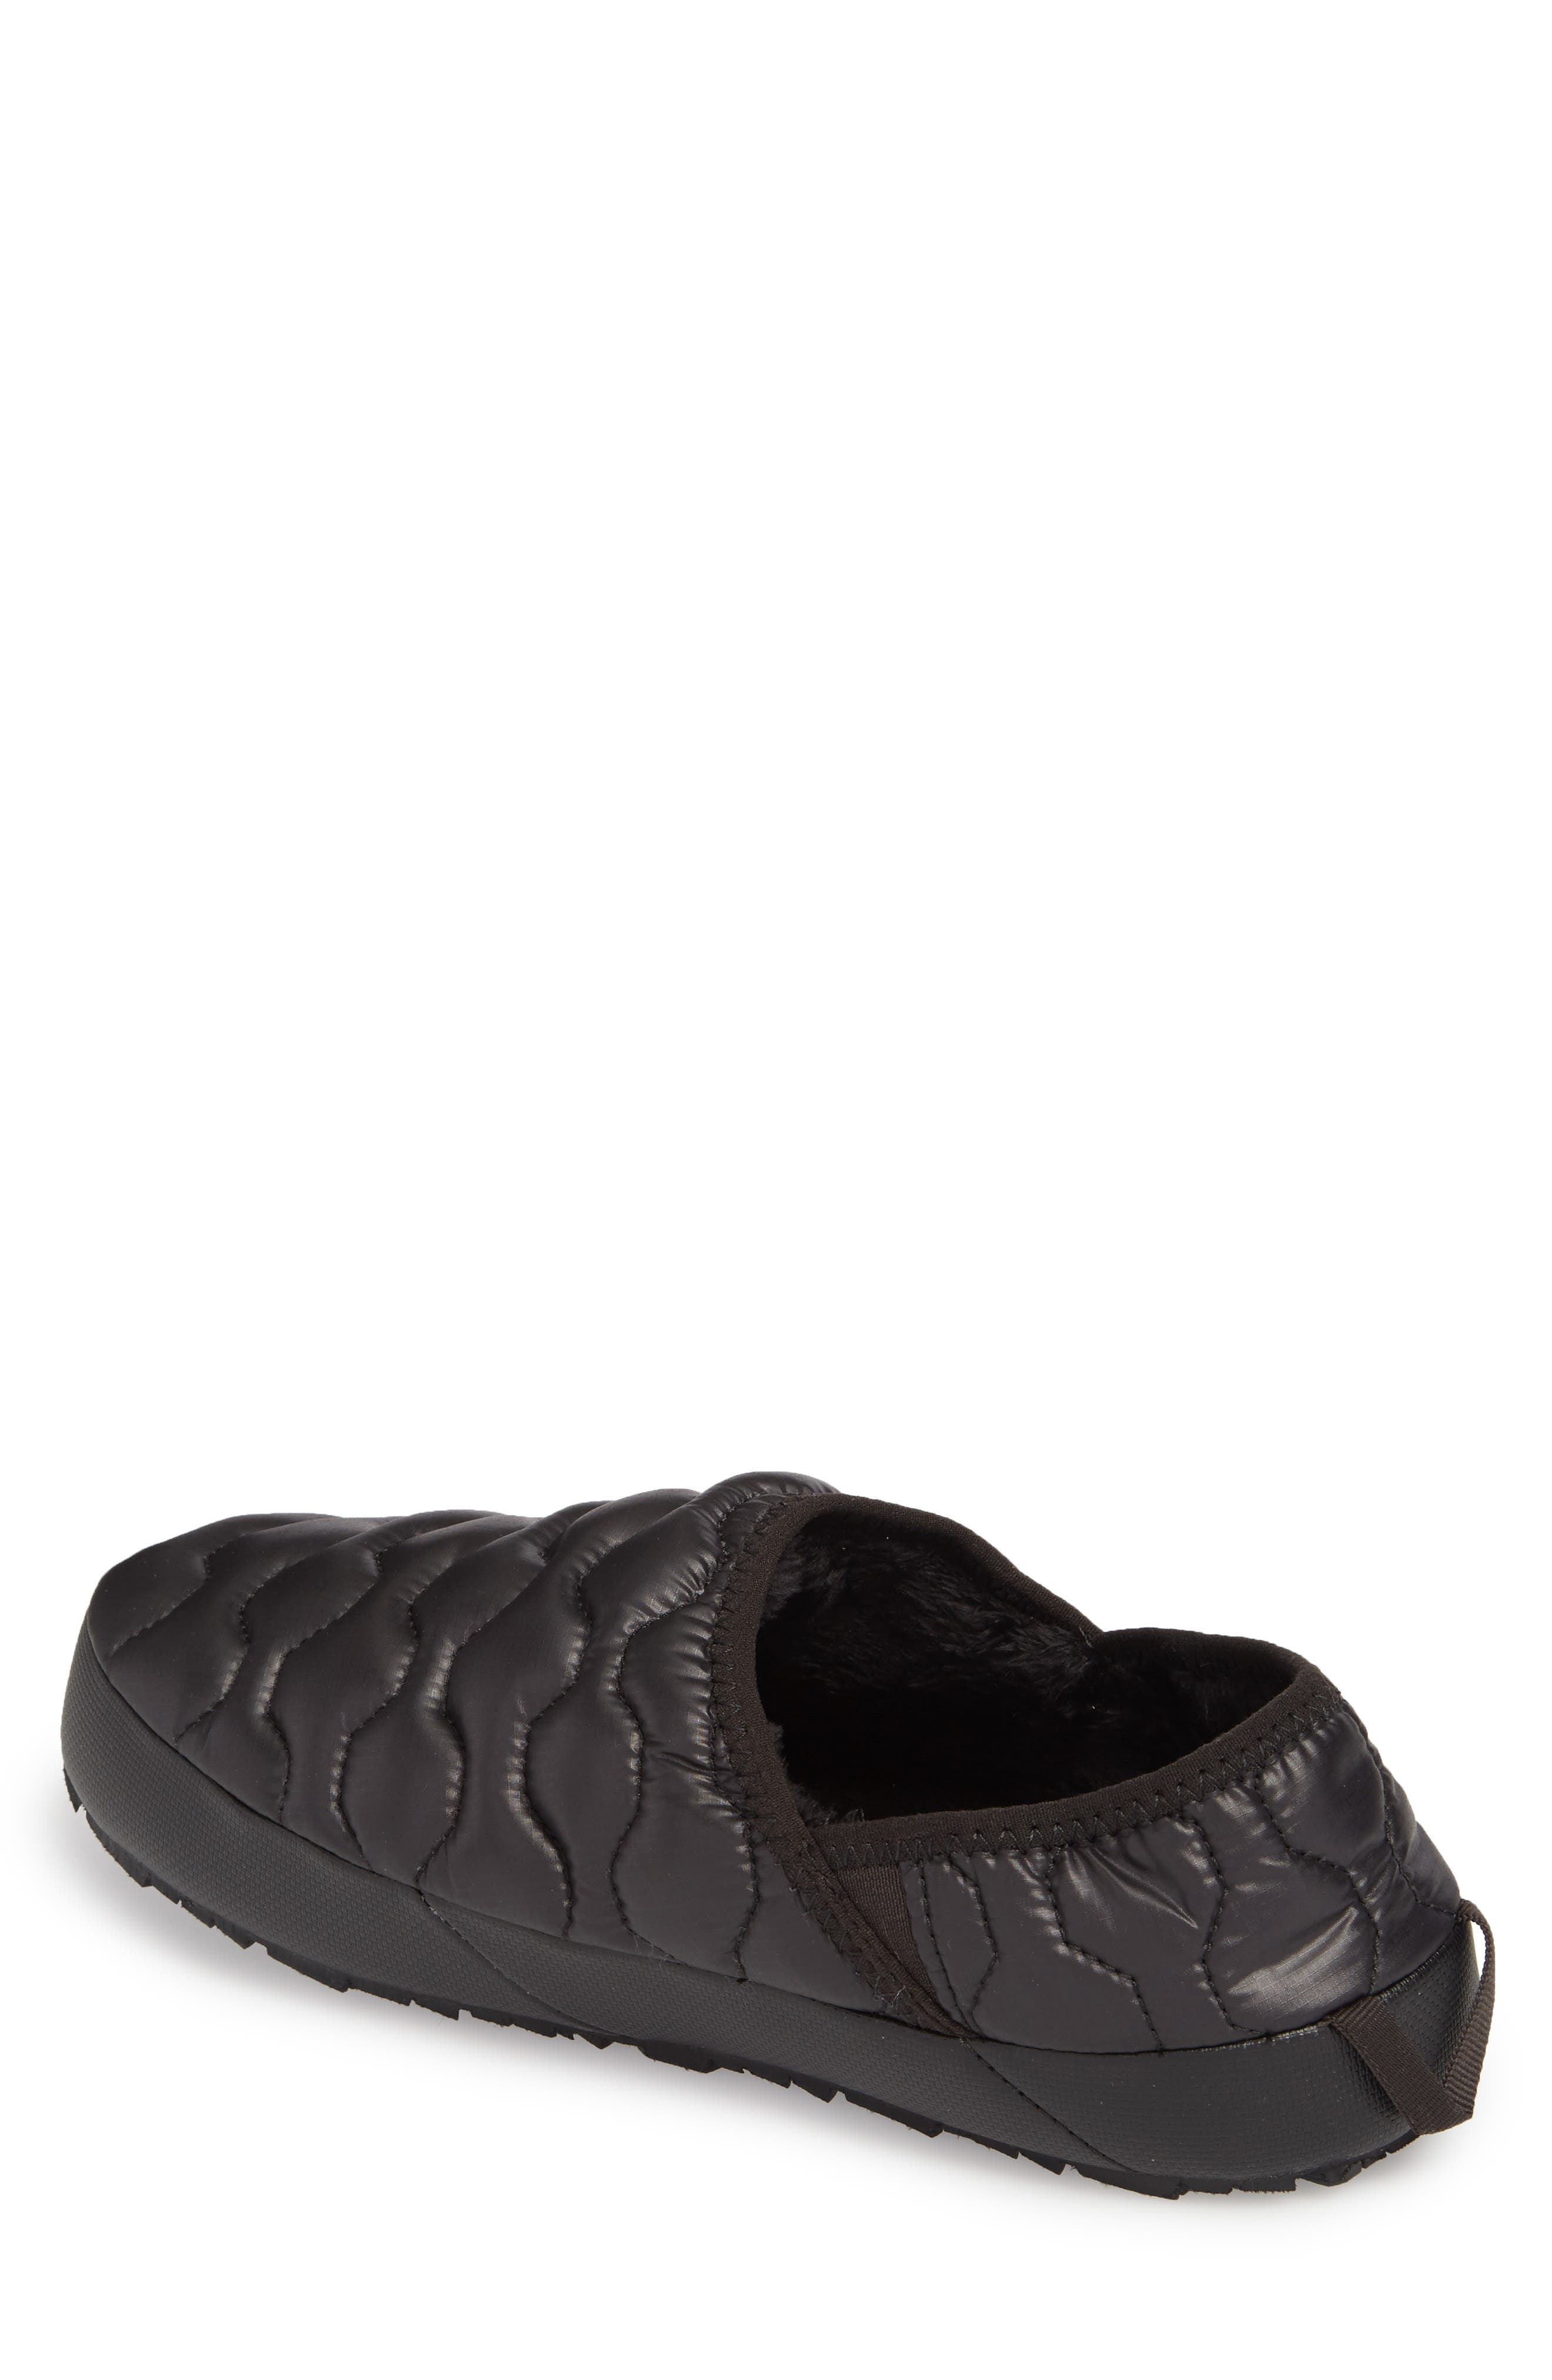 ThermoBall<sup>™</sup> Water-Resistant Traction slipper,                             Alternate thumbnail 2, color,                             SHINY BLACK/ DARK GREY